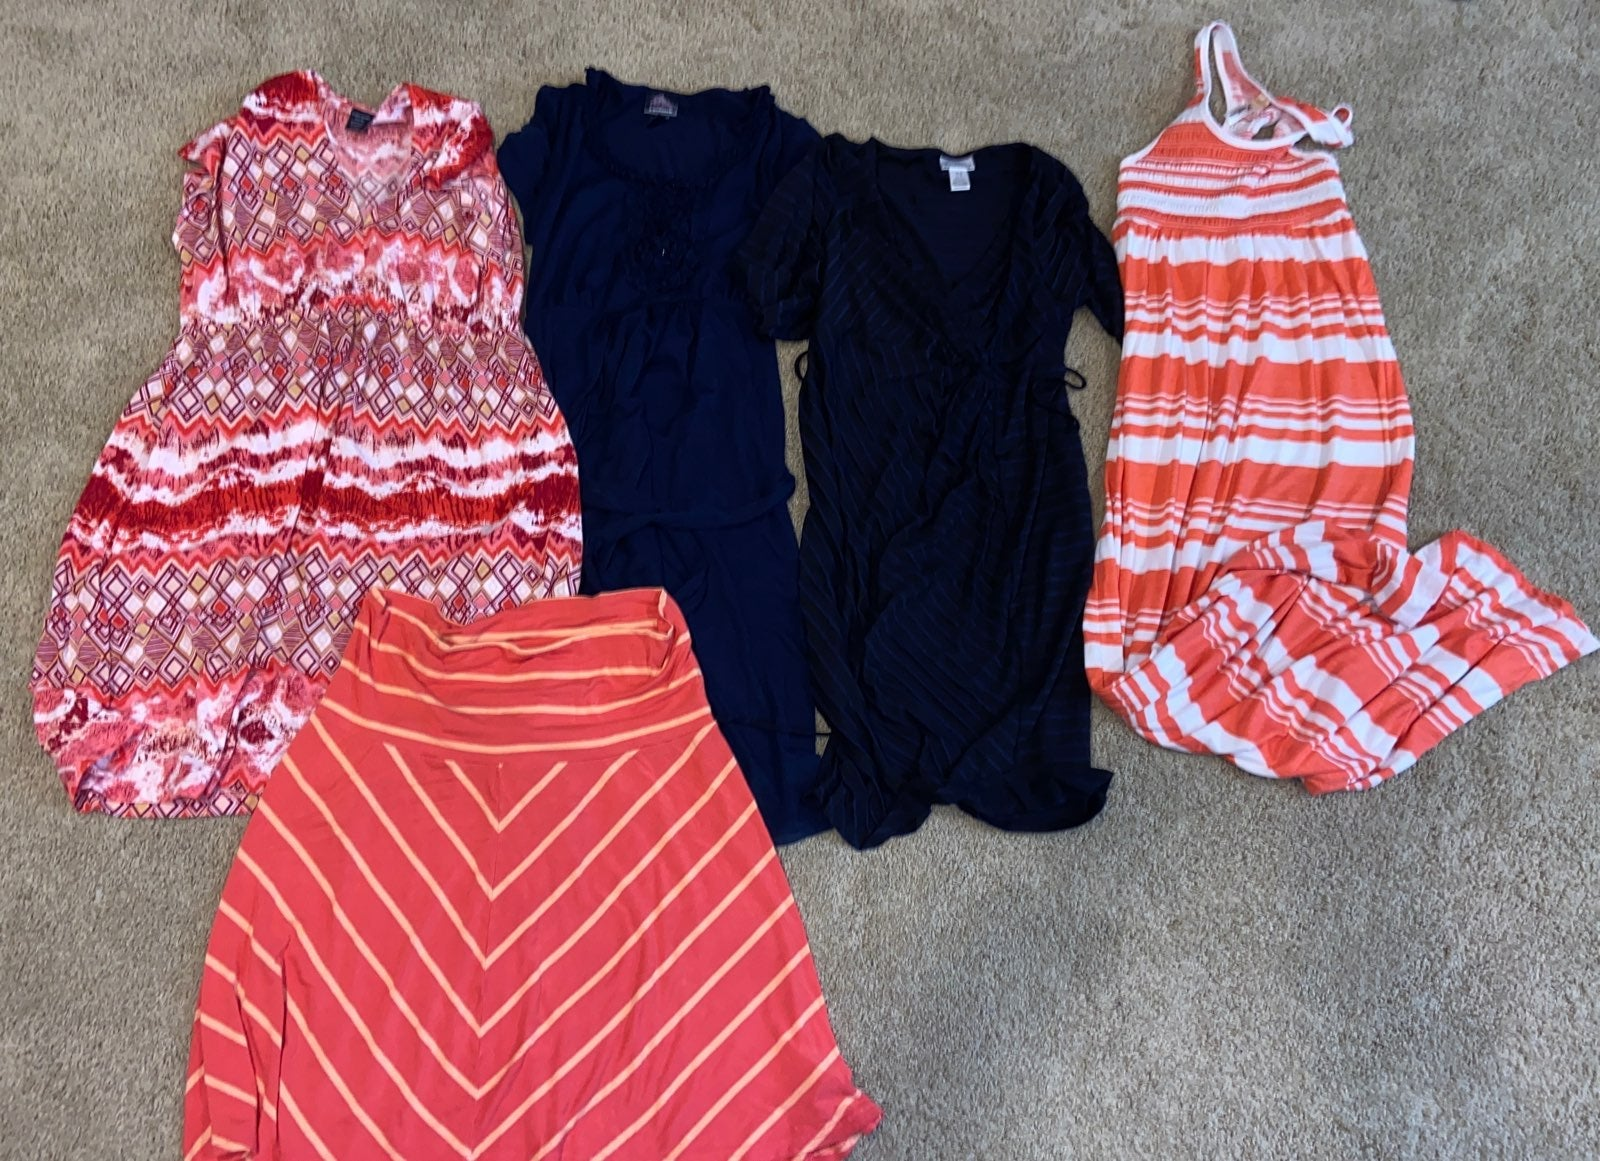 Bundle of 5 maternity dresses and skirts